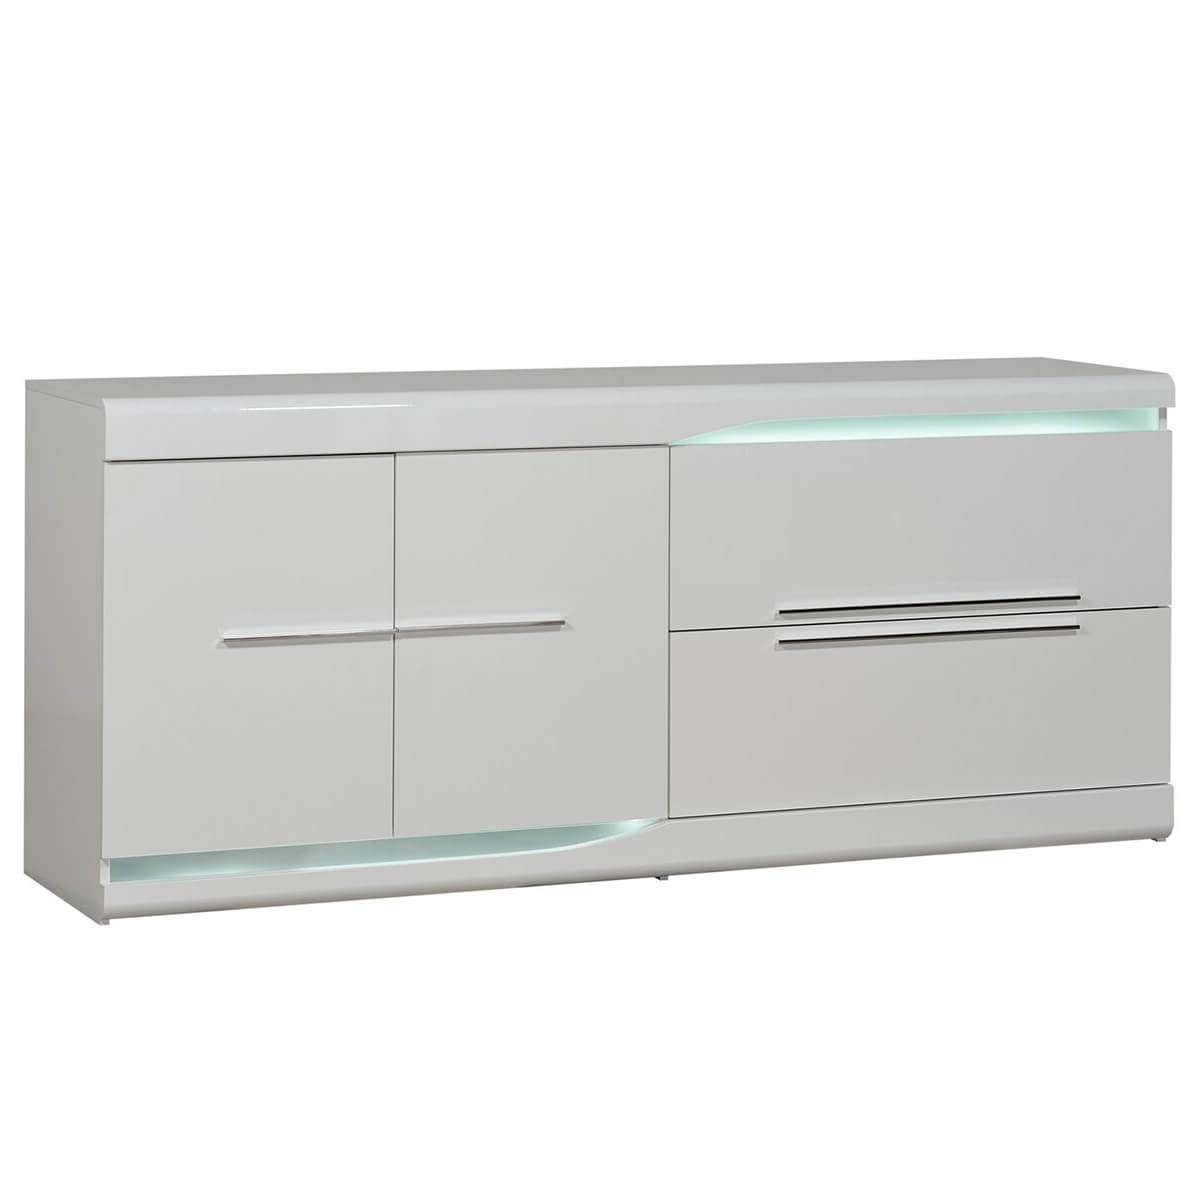 Ovio White Sideboard With Led Lights | Modern Sideboards | Fads With Regard To Sideboards With Lights (View 10 of 20)